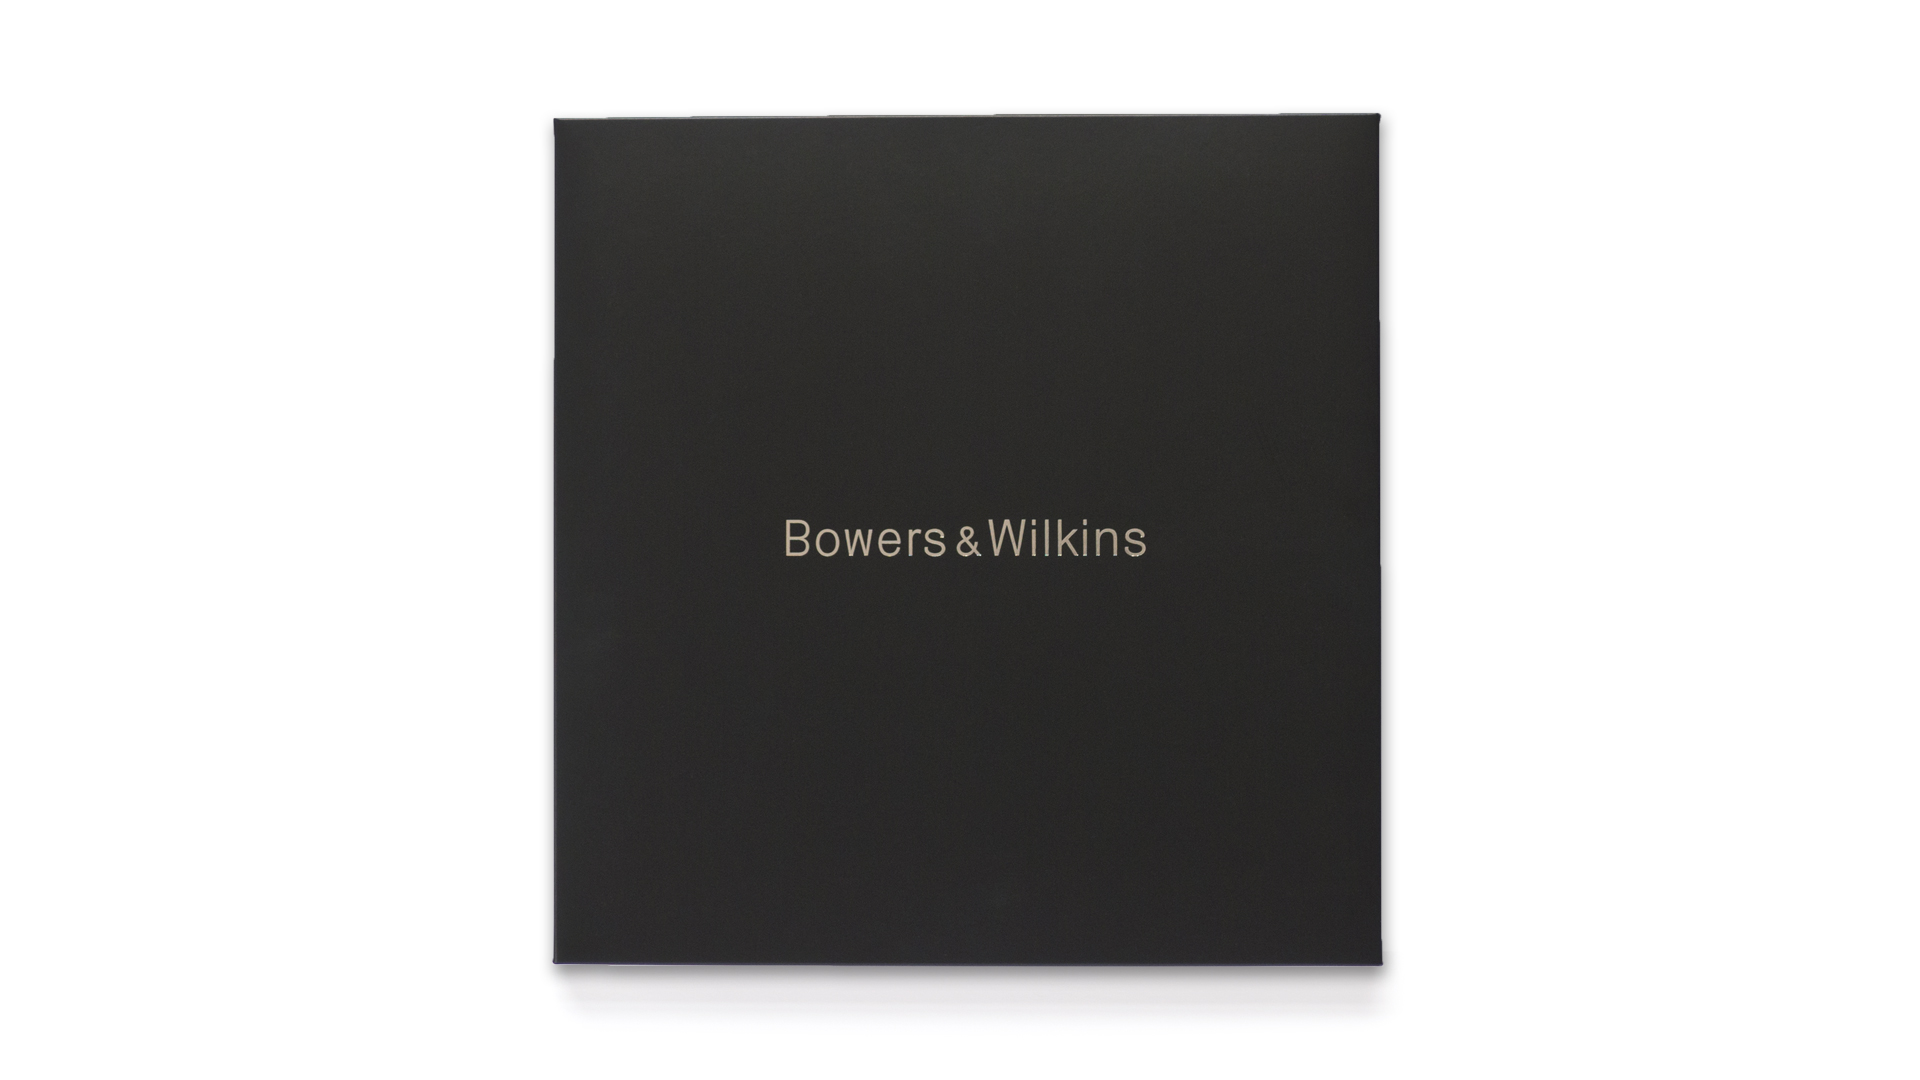 bowers wilkins 800 d3 box thomas manss company. Black Bedroom Furniture Sets. Home Design Ideas